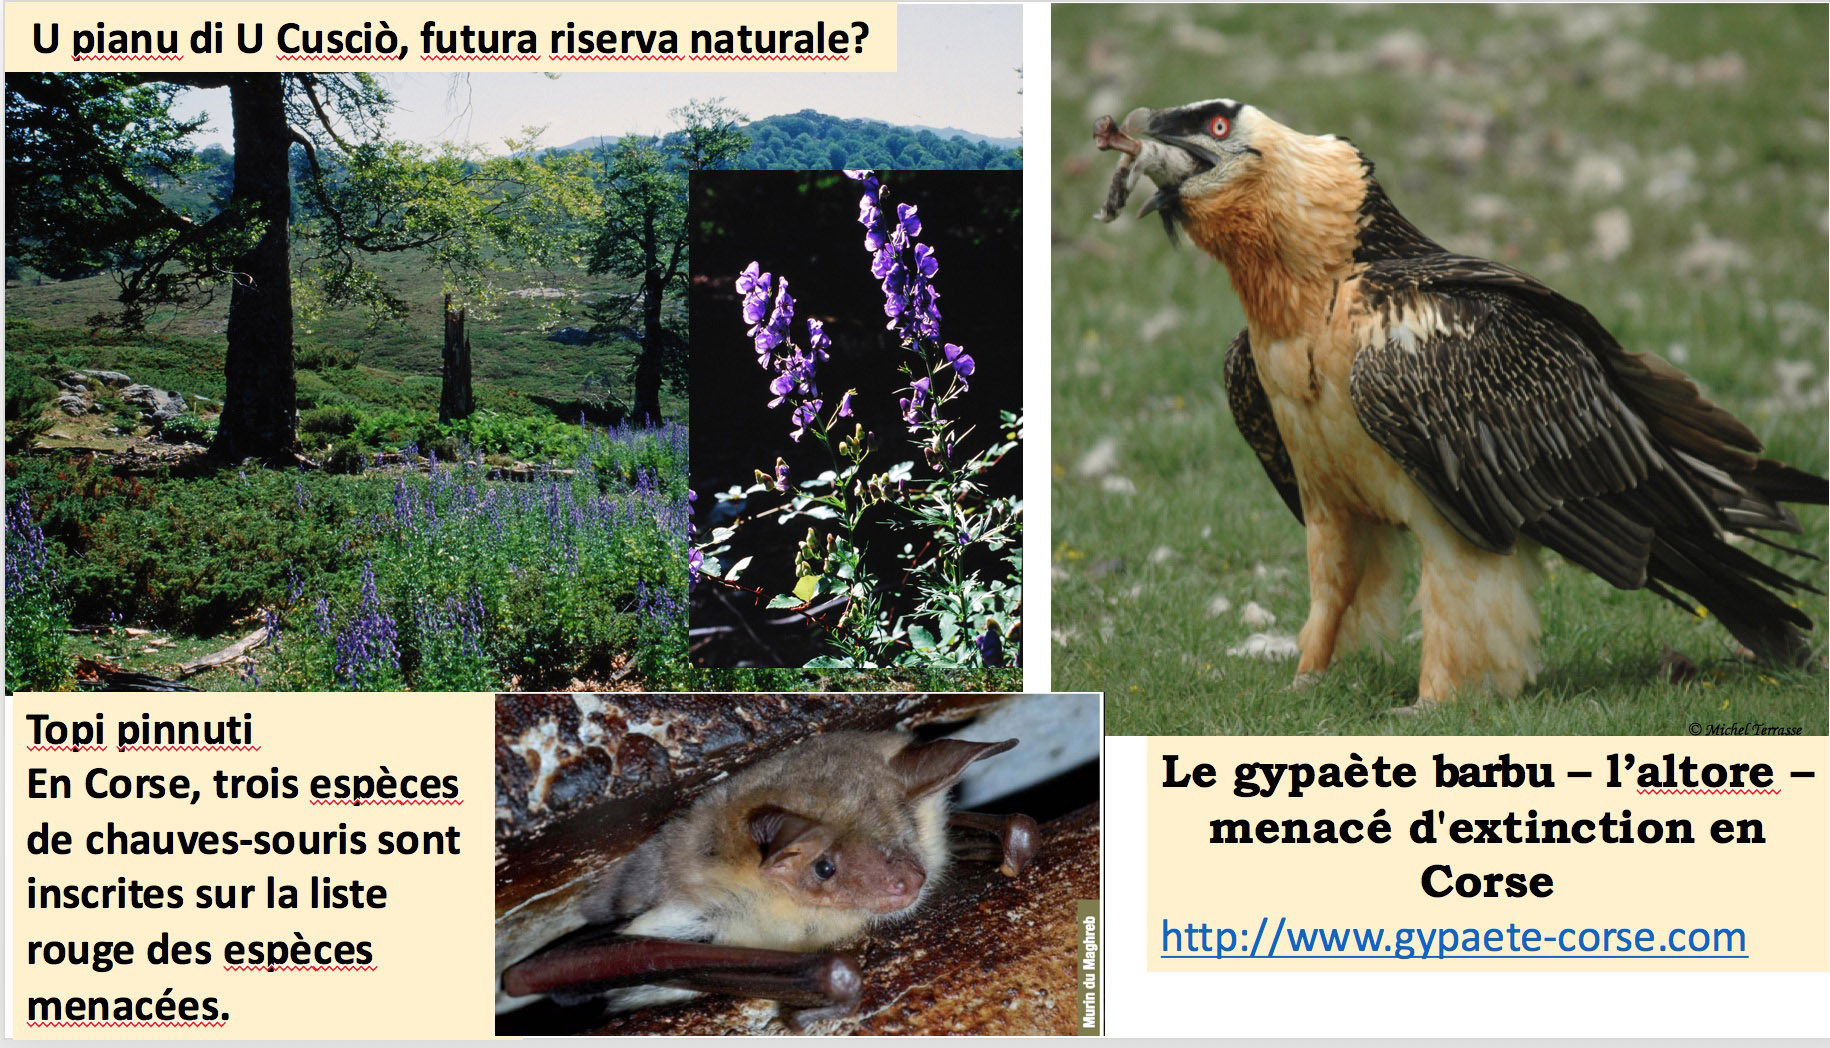 4 a nature 1 cuscionu altore b